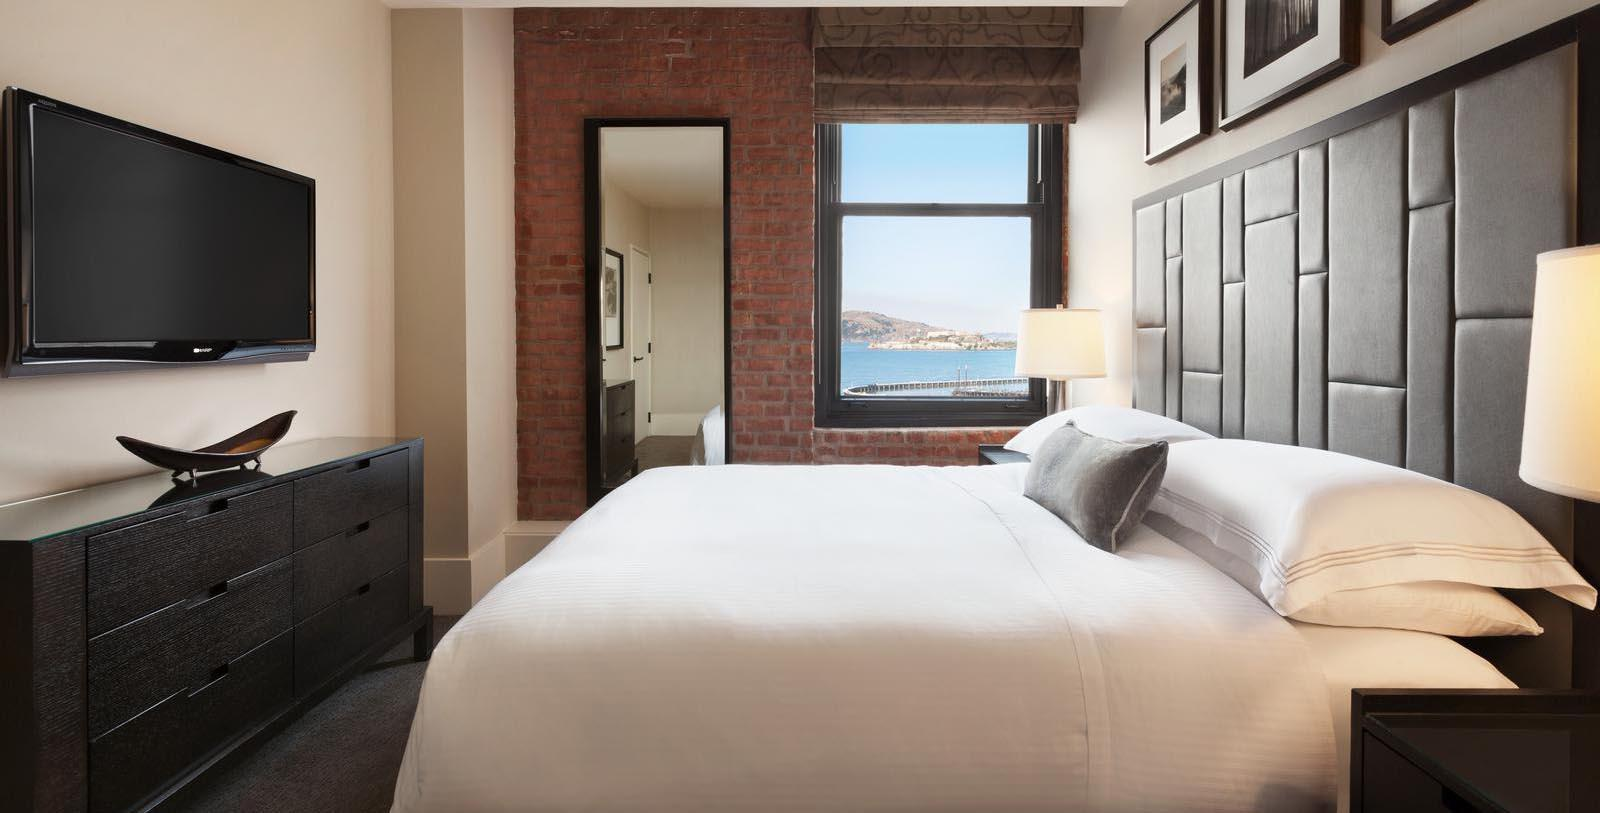 Image of Guestroom at Fairmont Heritage Place, Ghirardelli Square, 1893, Member of Historic Hotels of America, in San Francisco, California, Accommodations